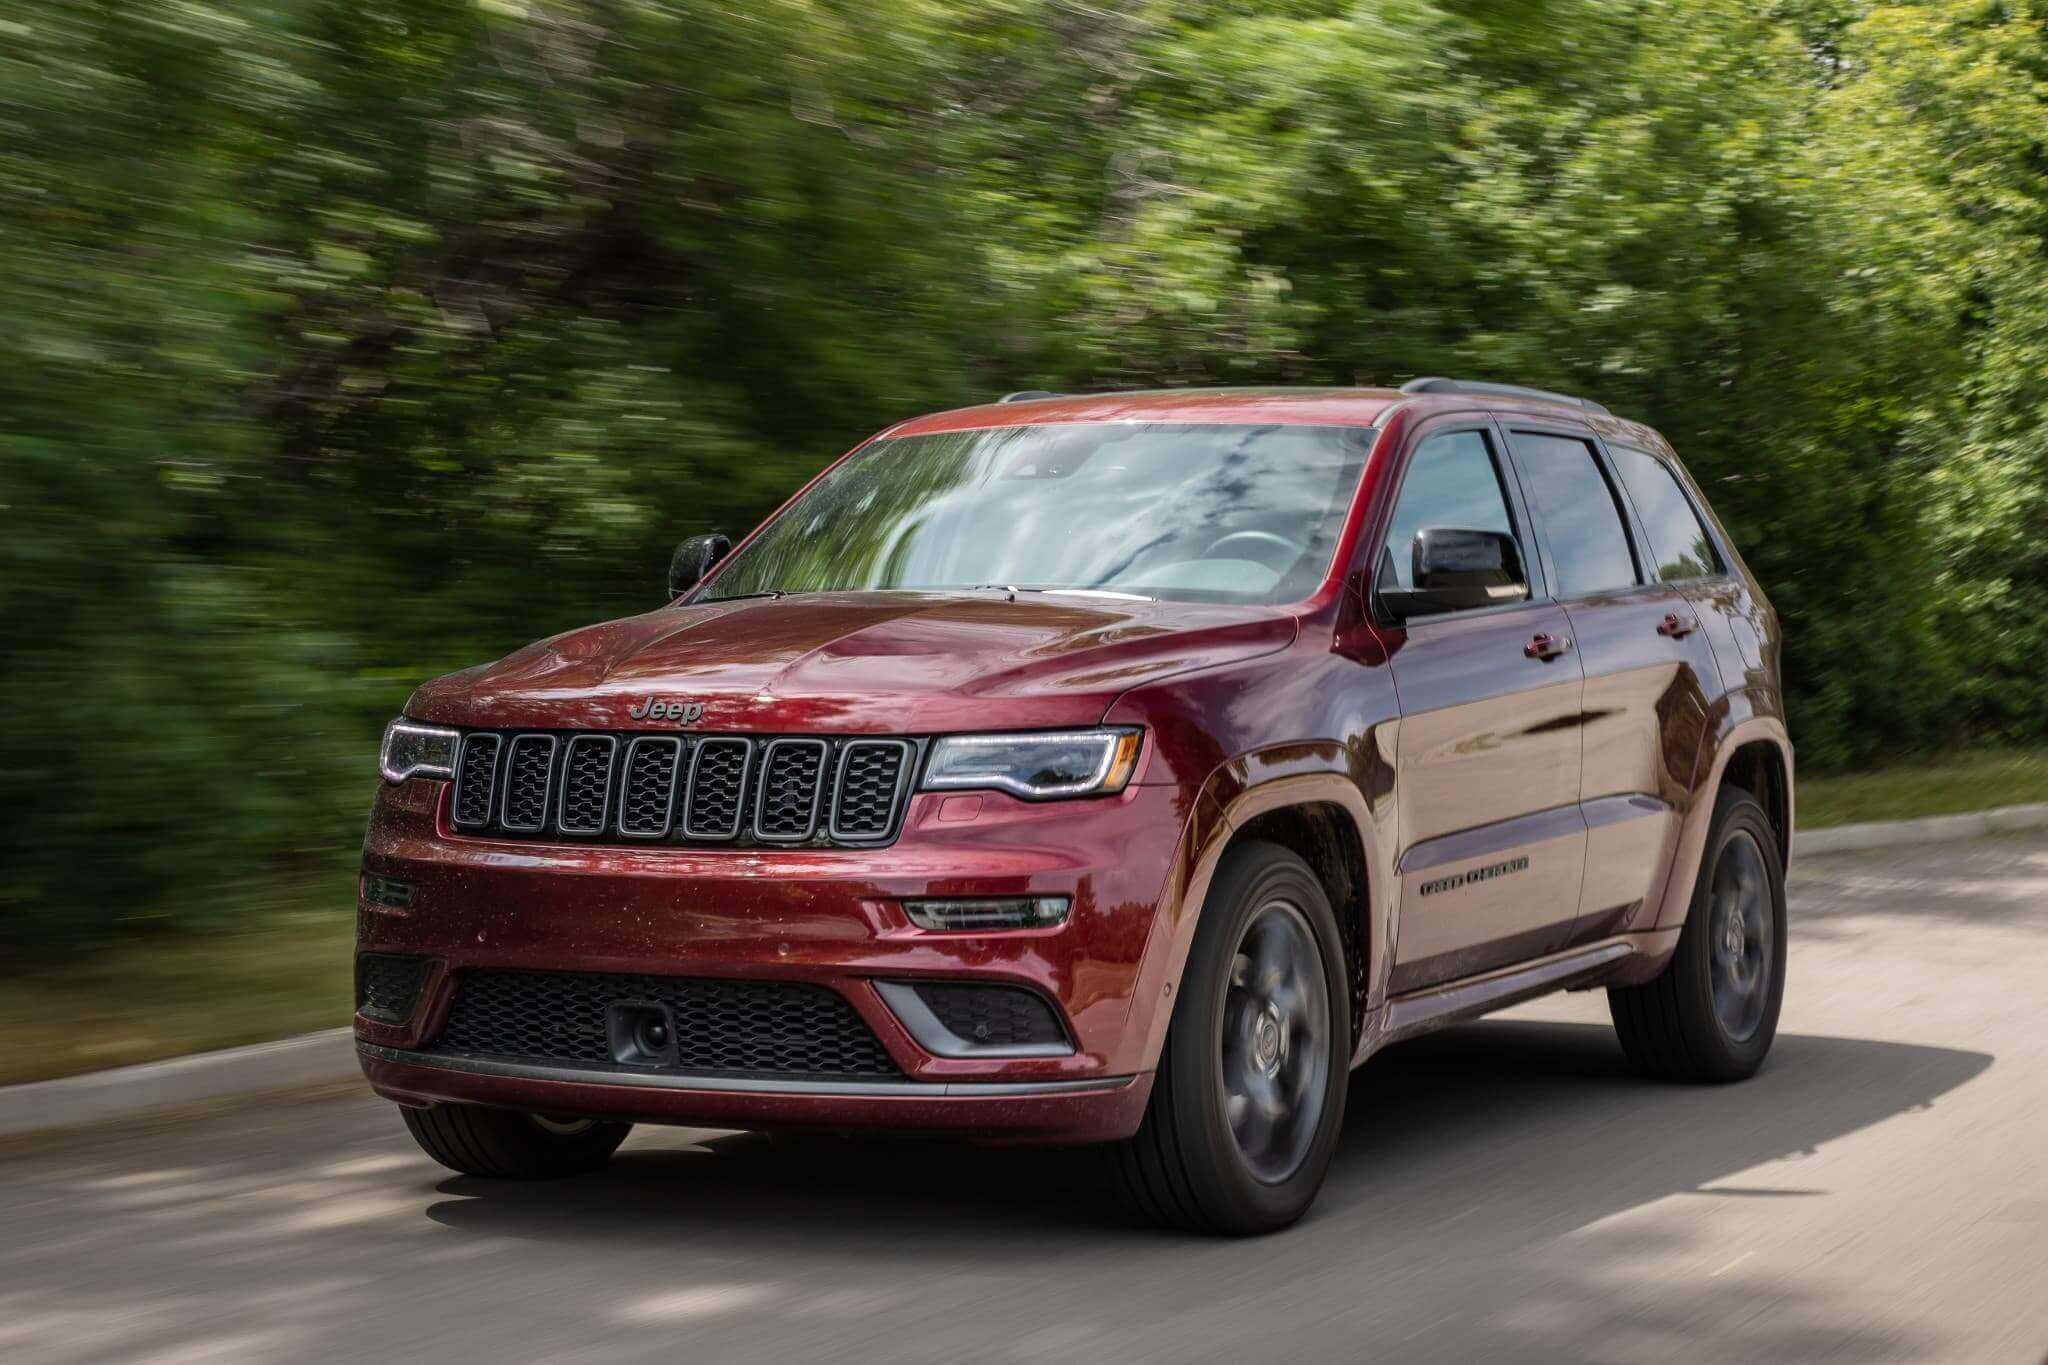 Jeep Grand Cherokee 2019 in motion with trees in the background